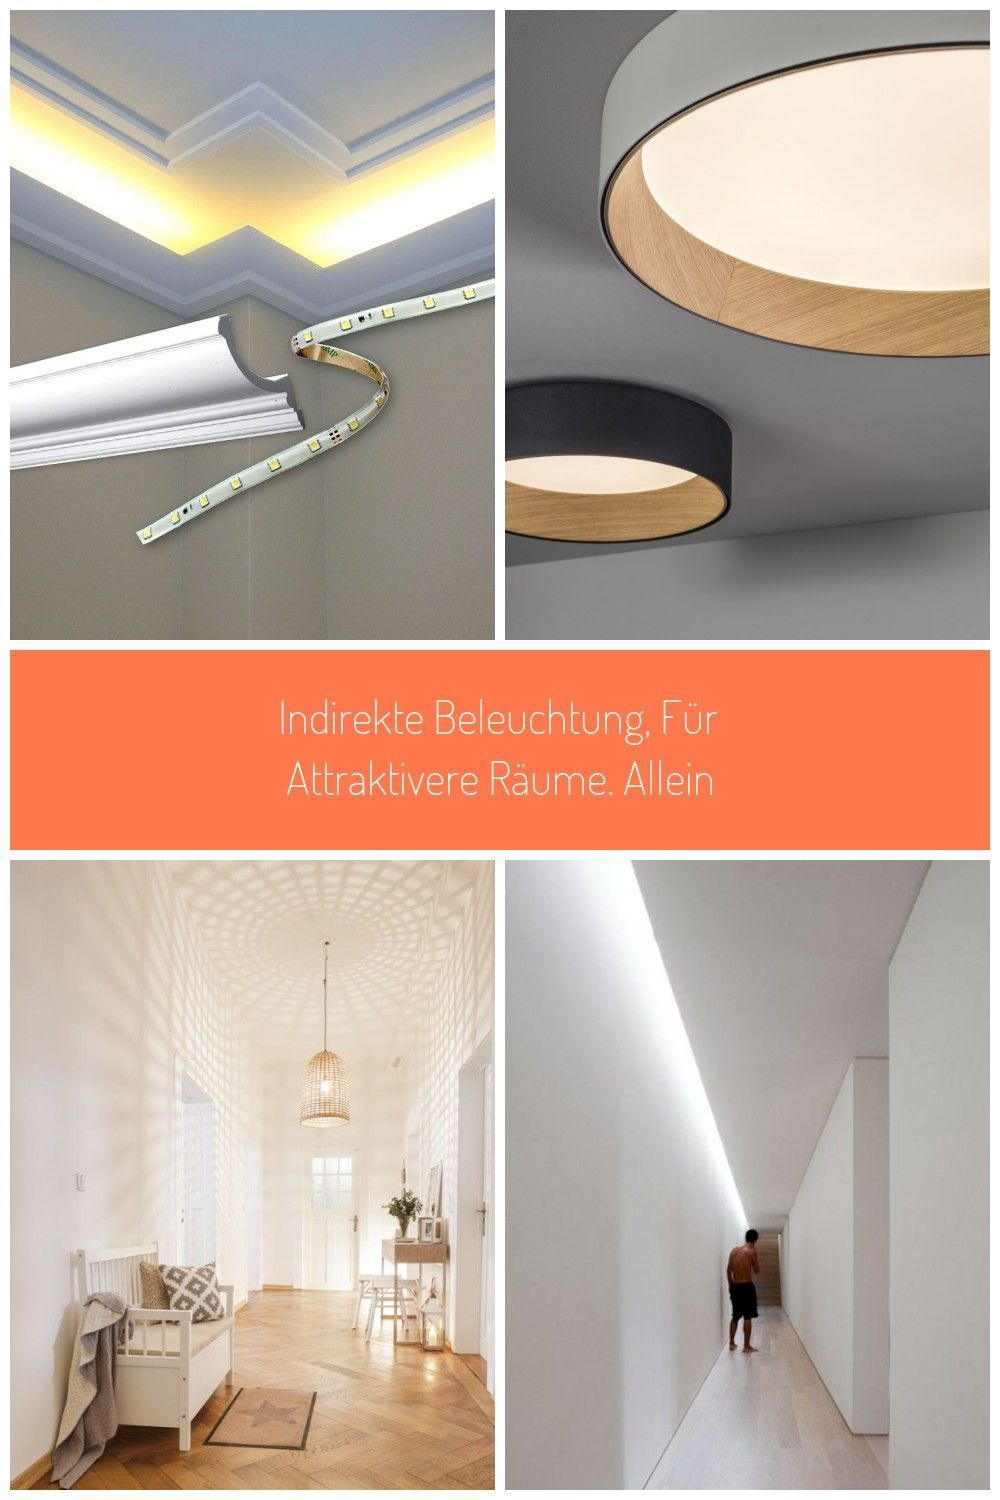 Indirect Lighting For More Attractive Spaces Alone Alone Attractive Indirekte Beleuchtung Beleuchtung Wohnzimmer Decke